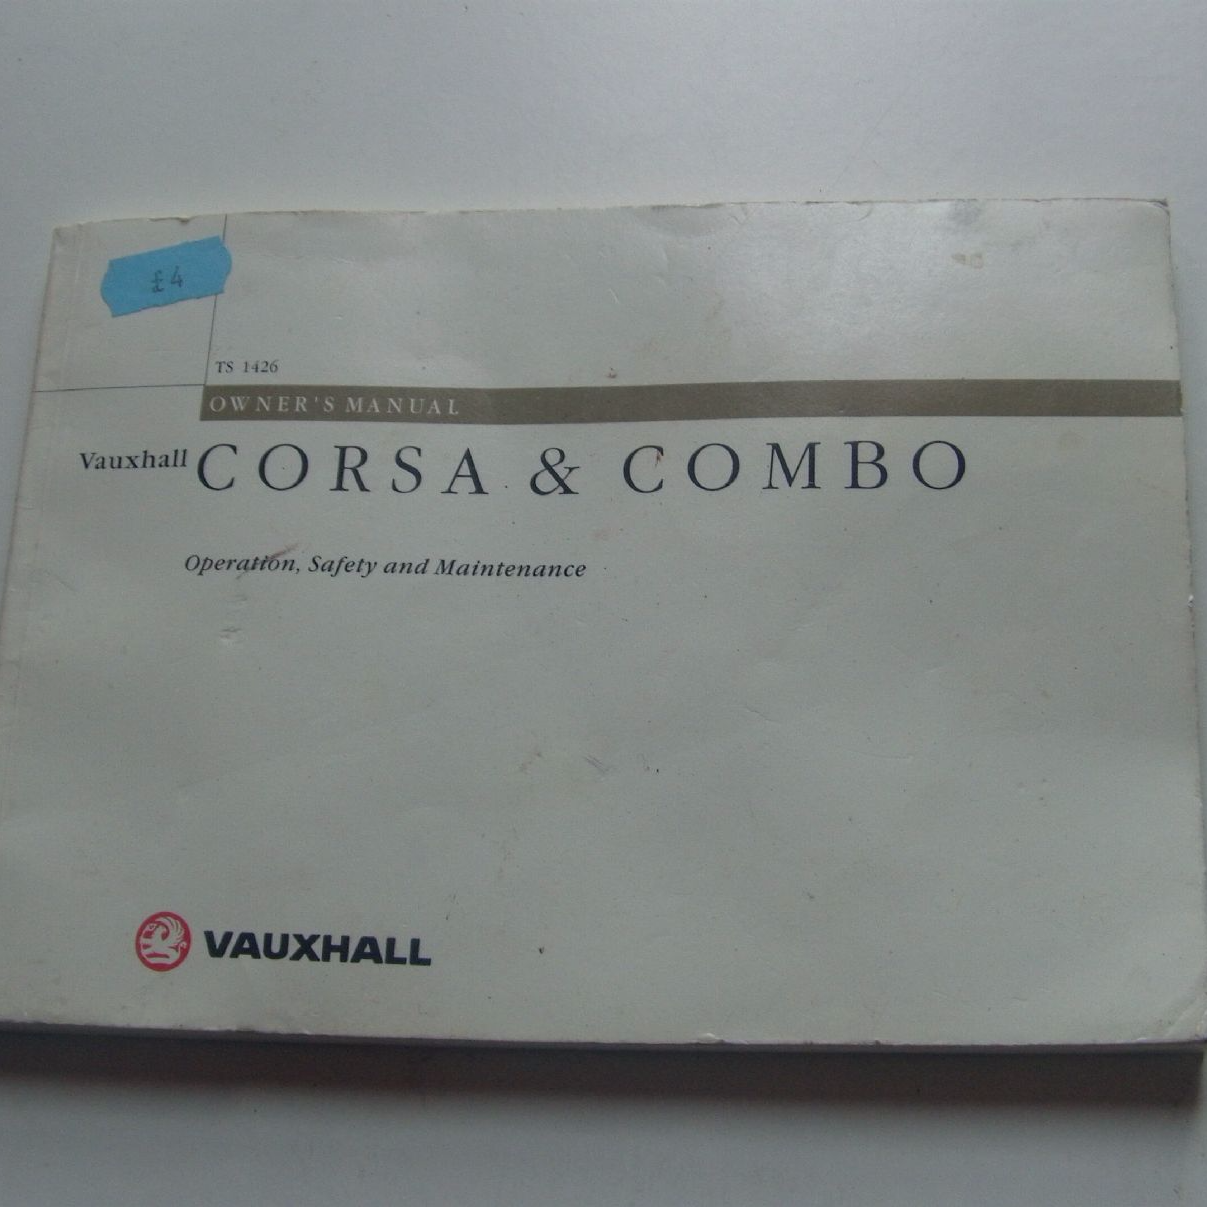 Vauxhall Corsa Combo Owner S Manual January 2000 Edition Spares Email This To A Friend